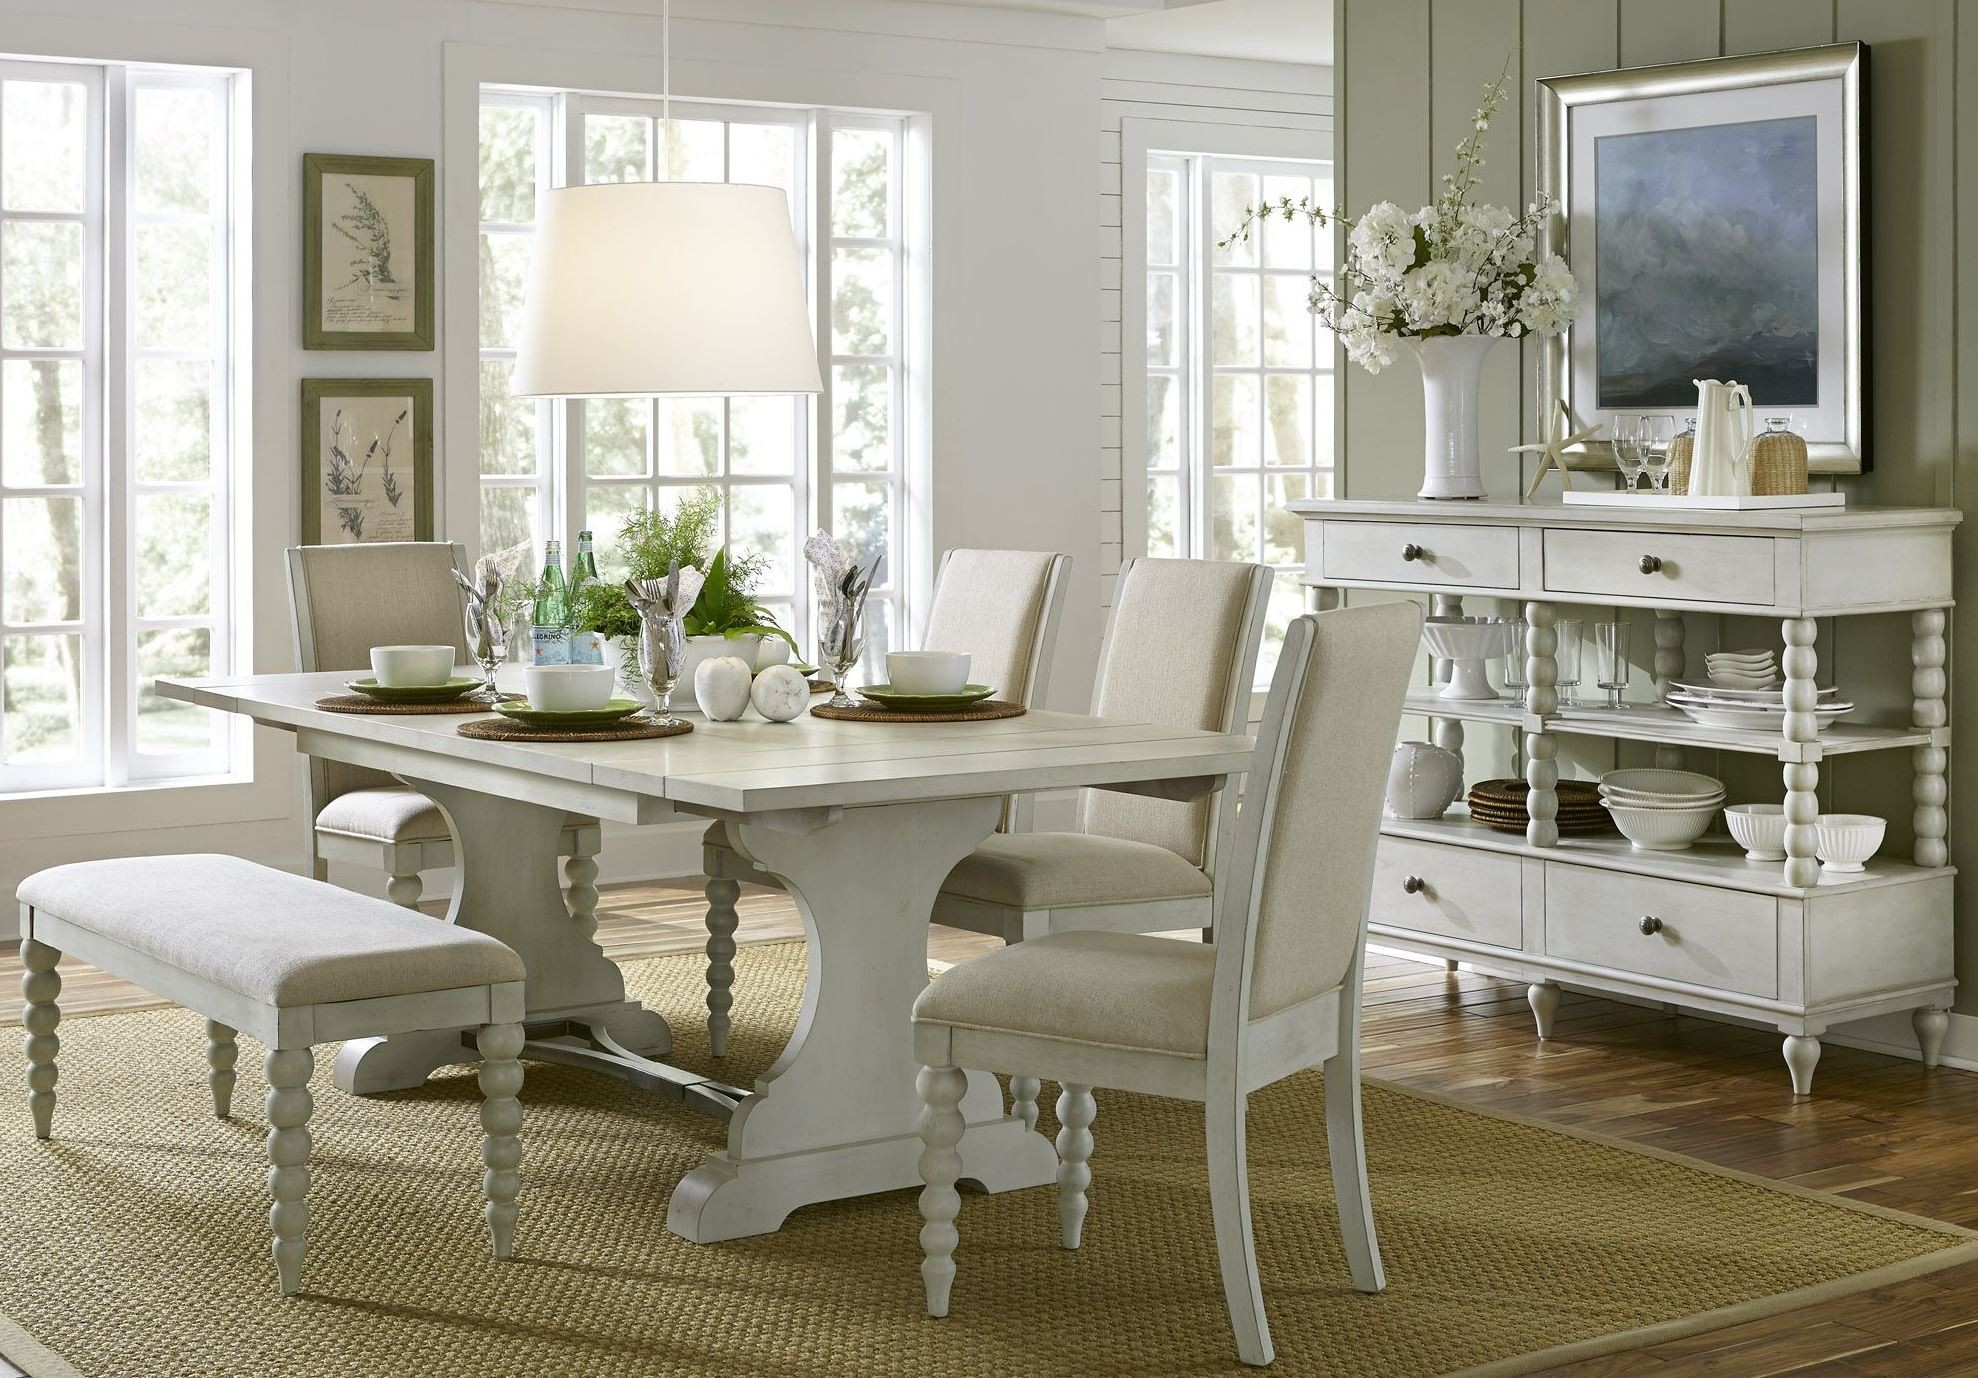 harbor view iii trestle extendable dining room set from liberty extendable dining room set682332 1671913